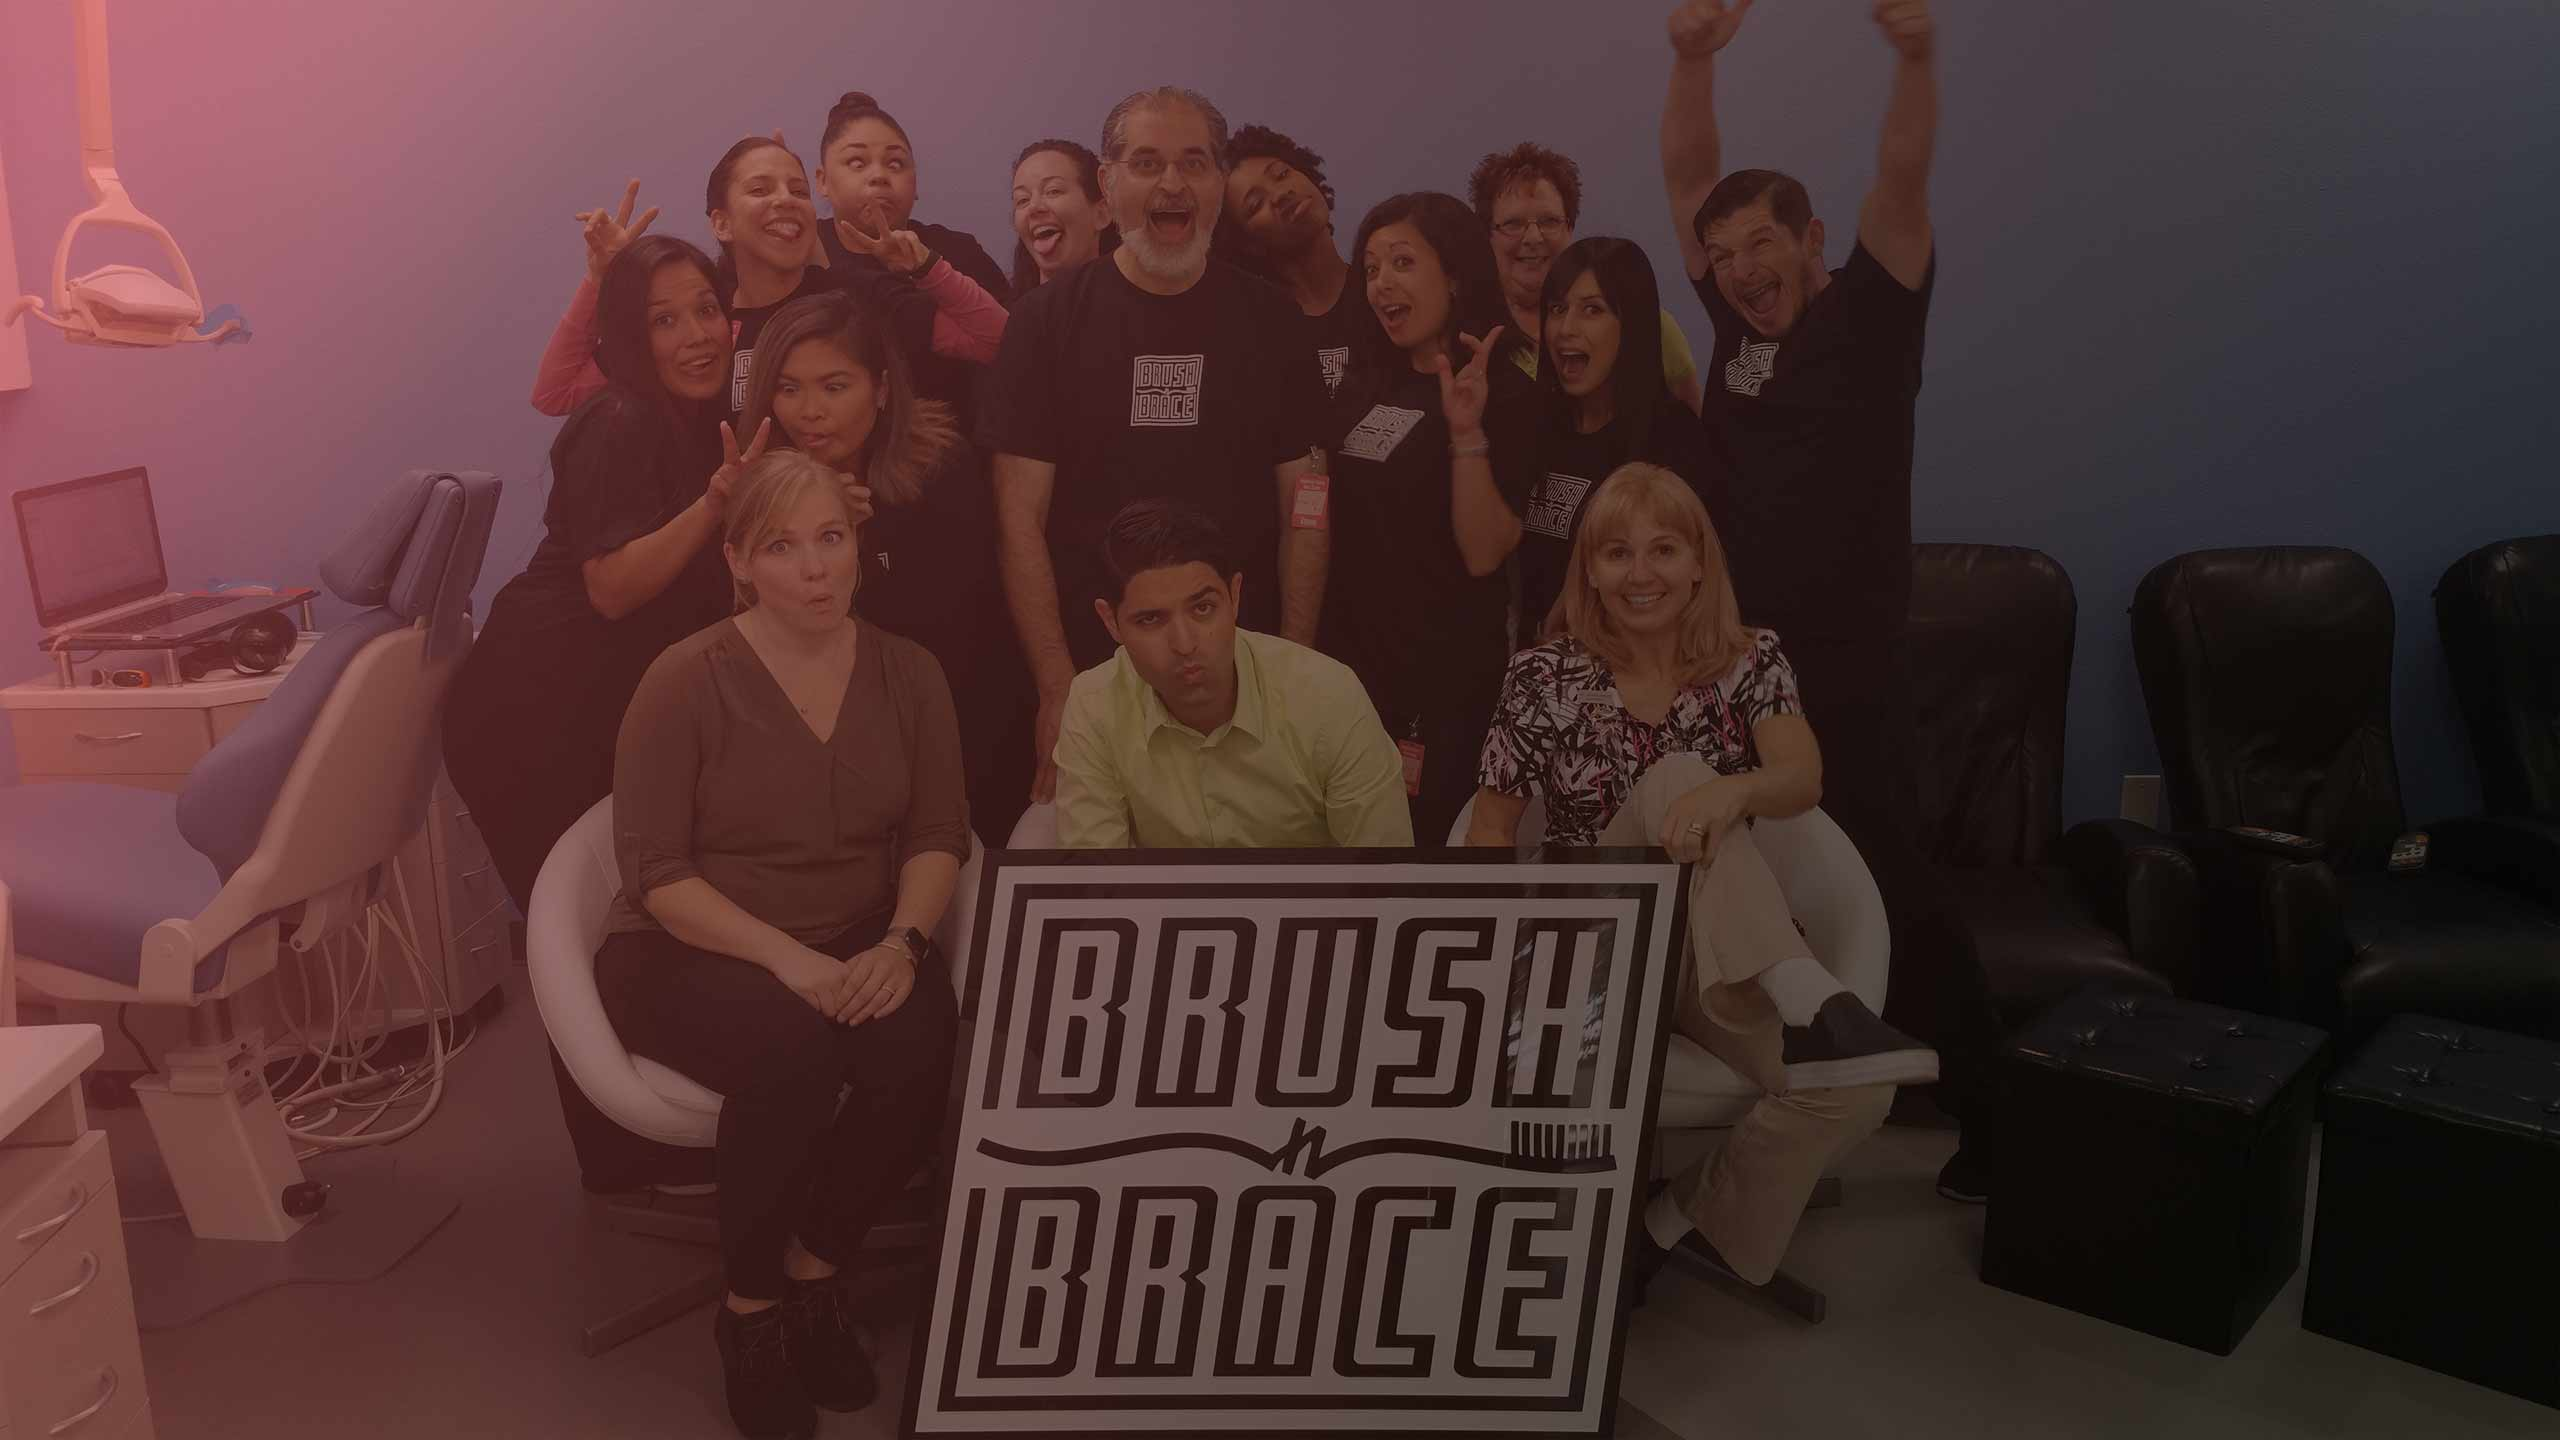 Meet our dental team at Brush n Brace